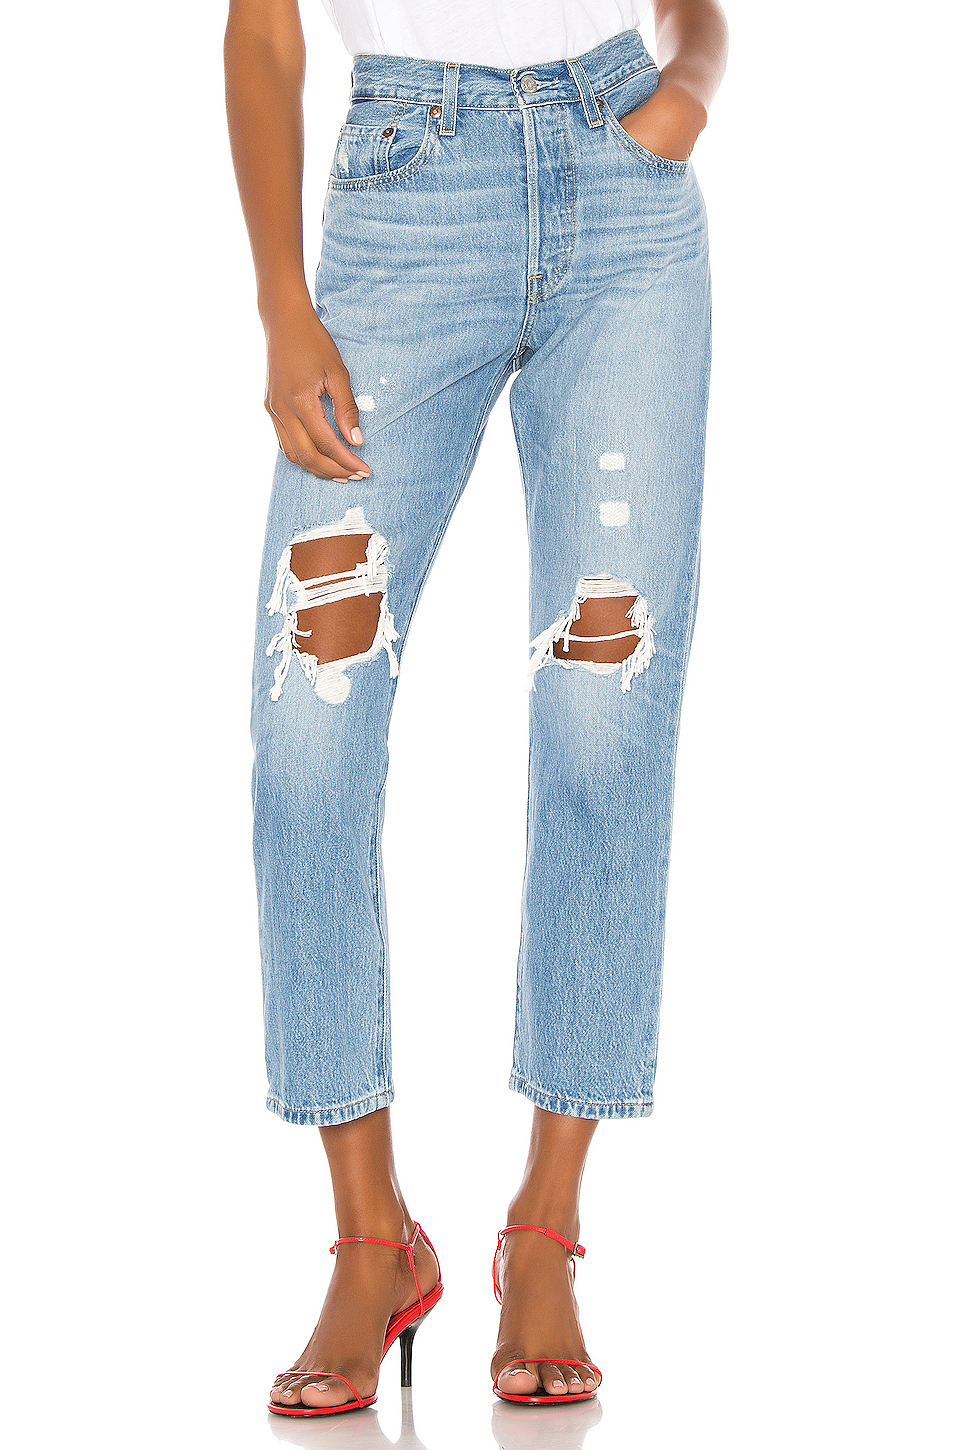 The 9 Best Jeans for Short Women, According to Reviews